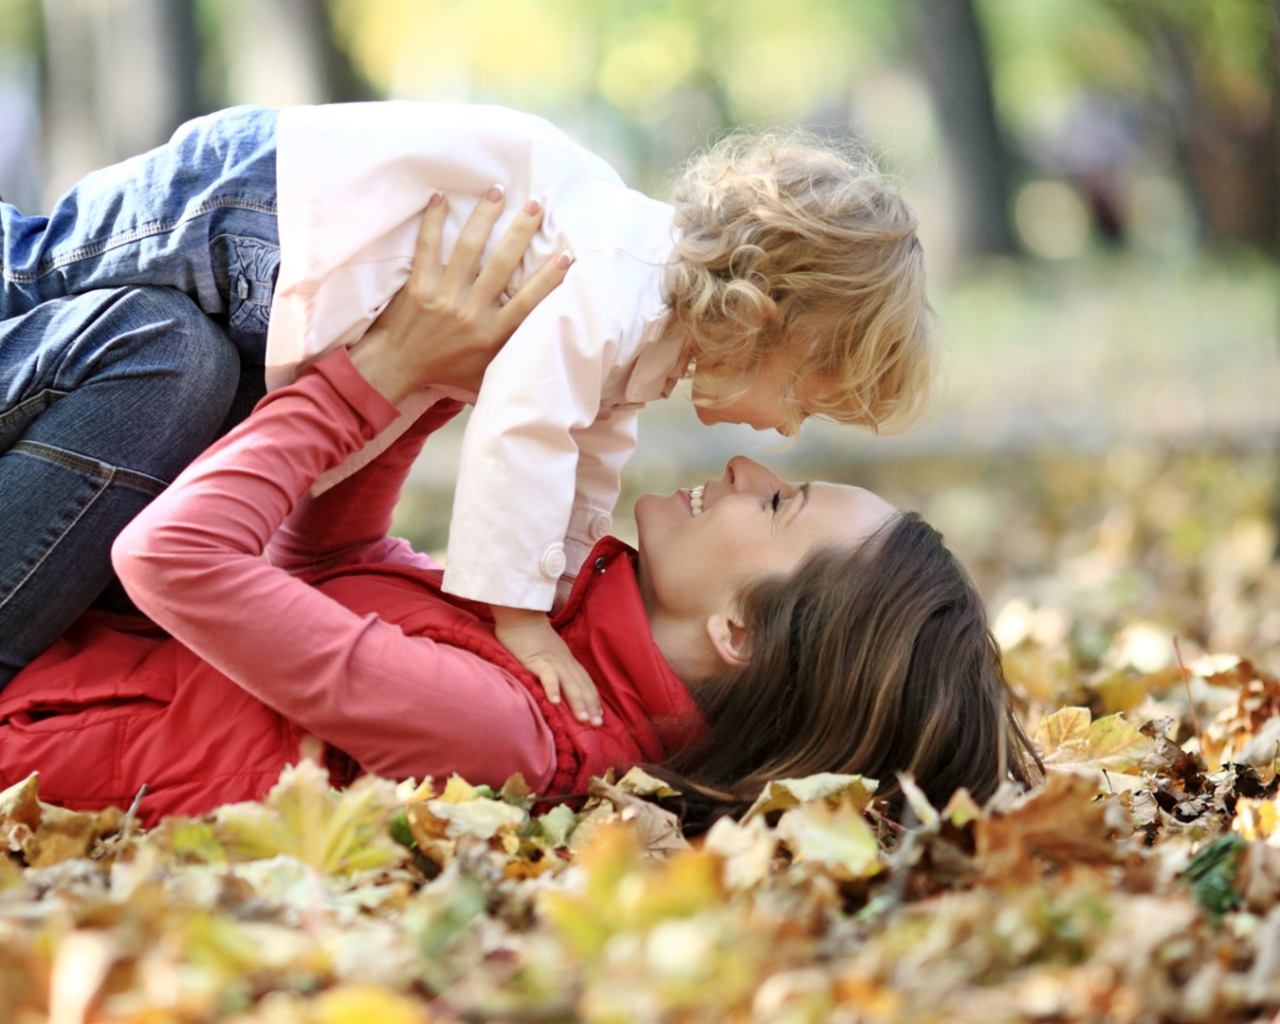 mother_child_leaves_autumn_67609_1280x1024